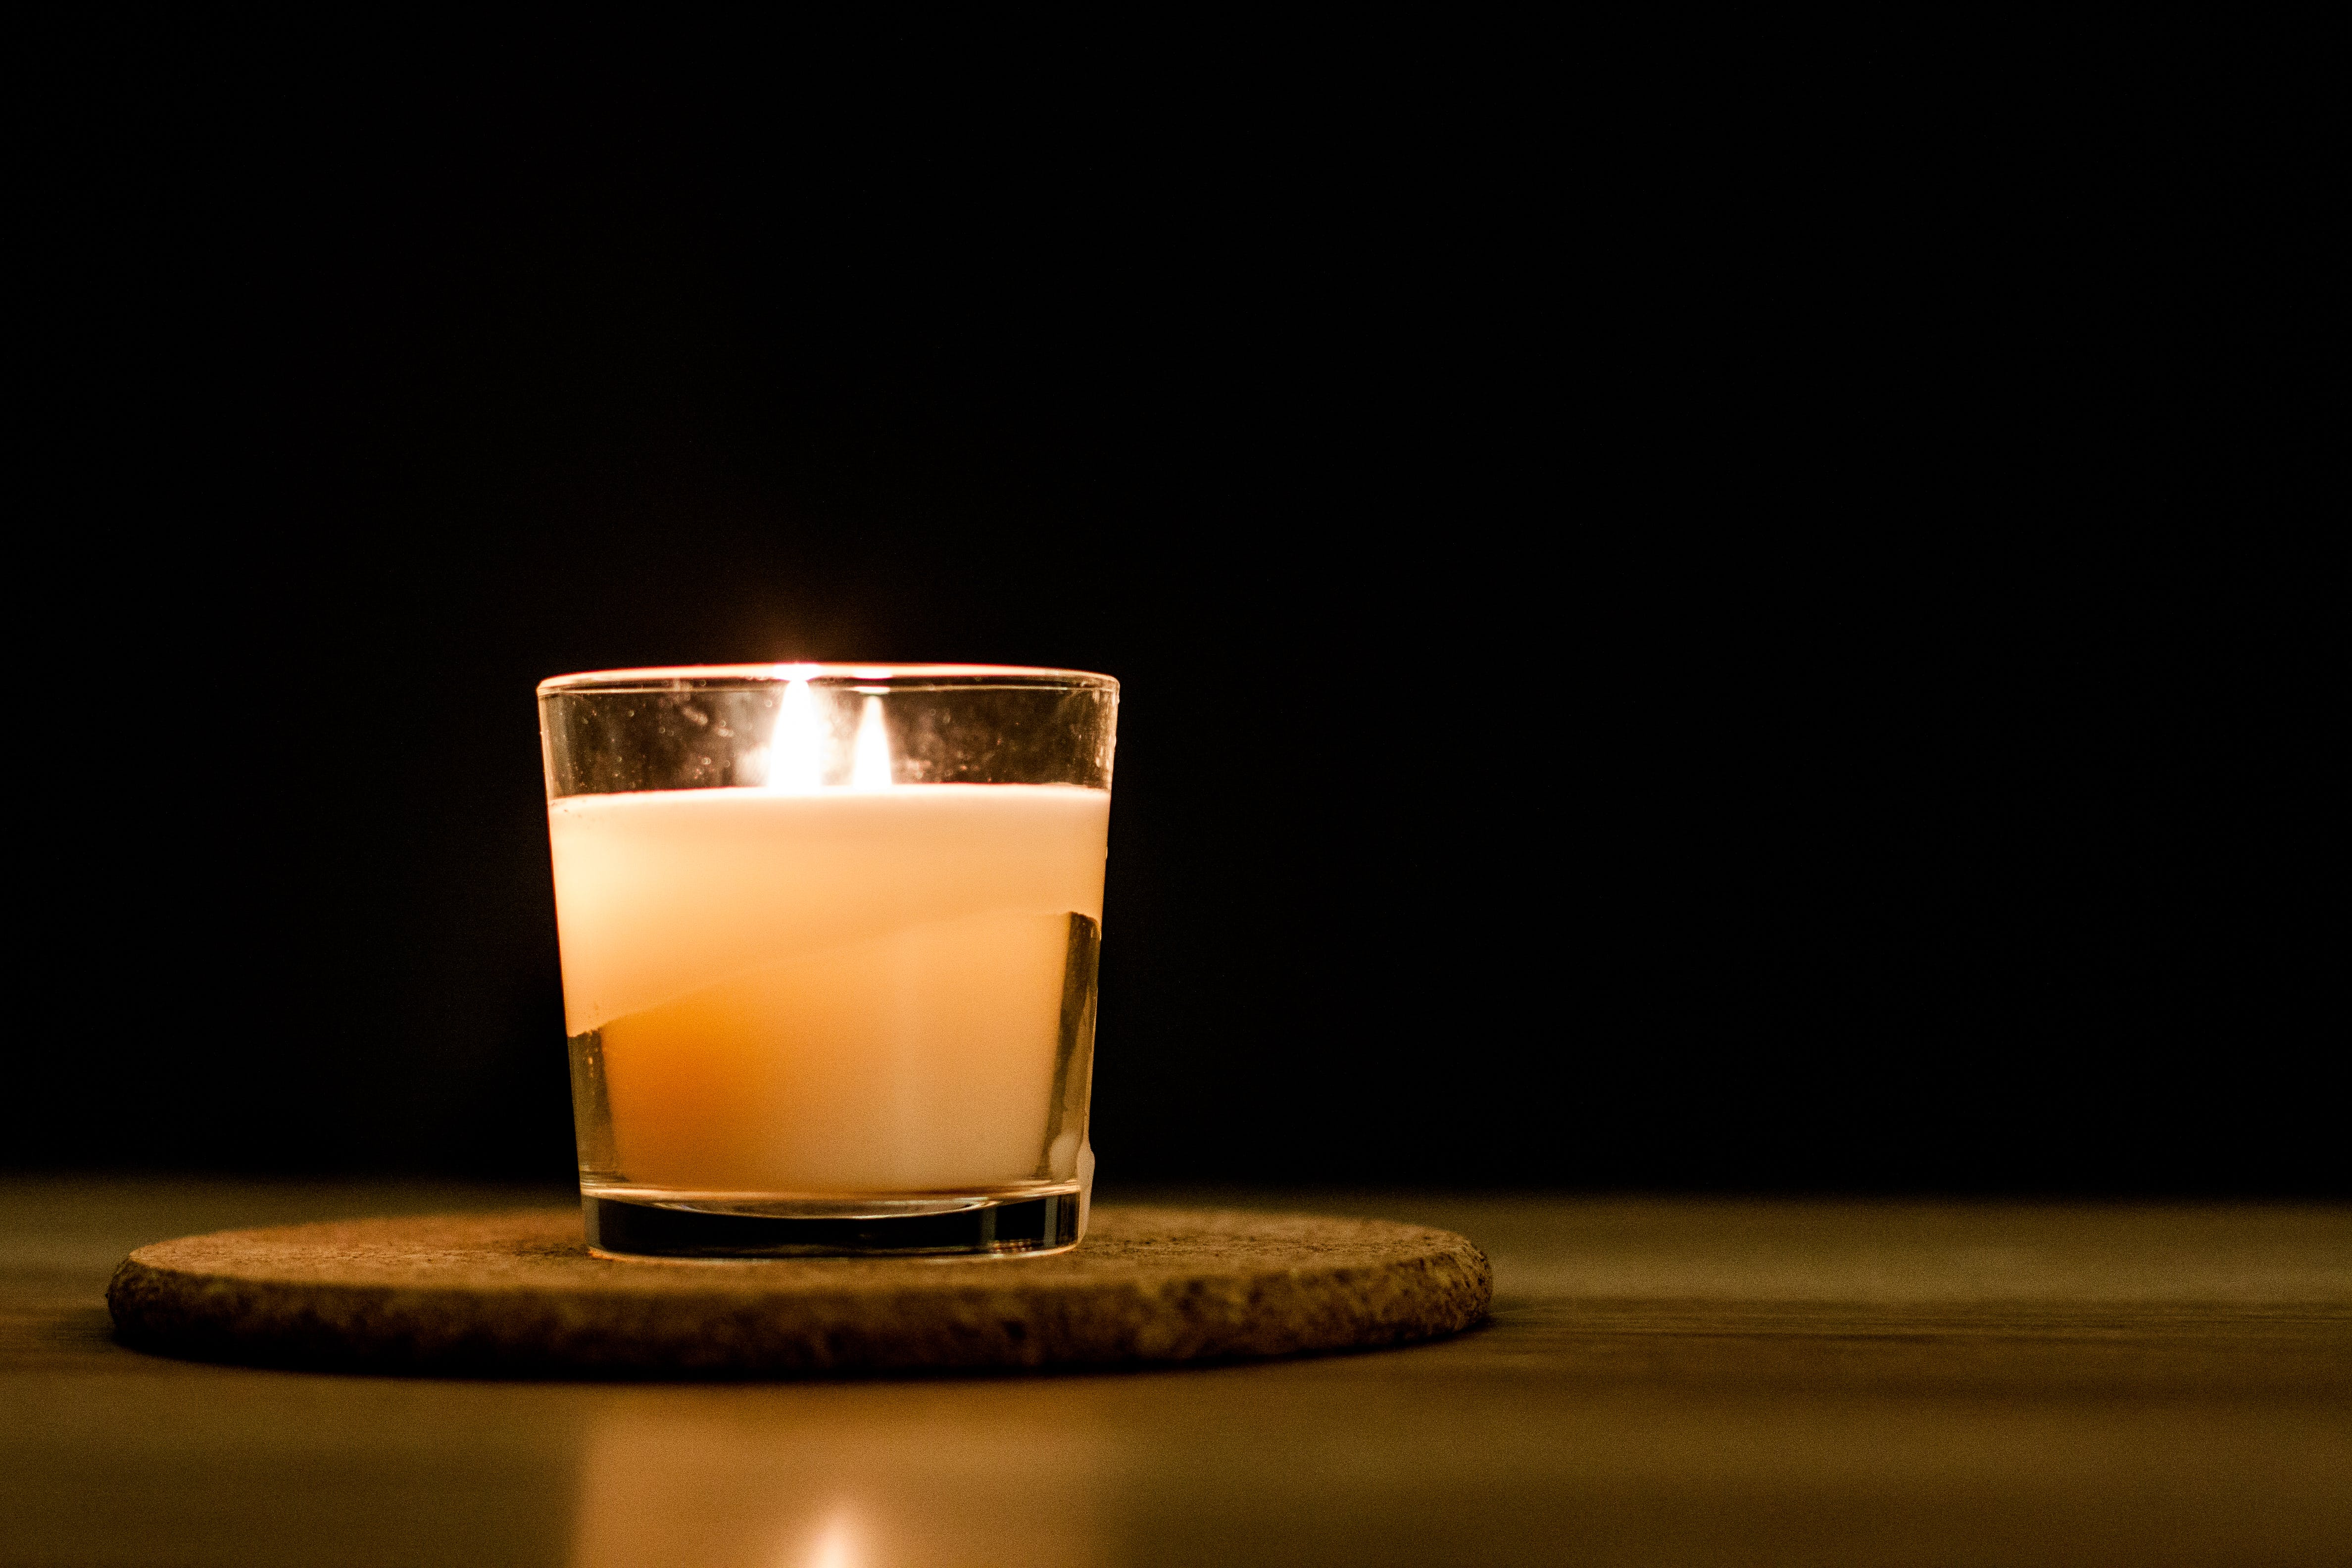 Free stock photo of glass, fire, candlelight, candle